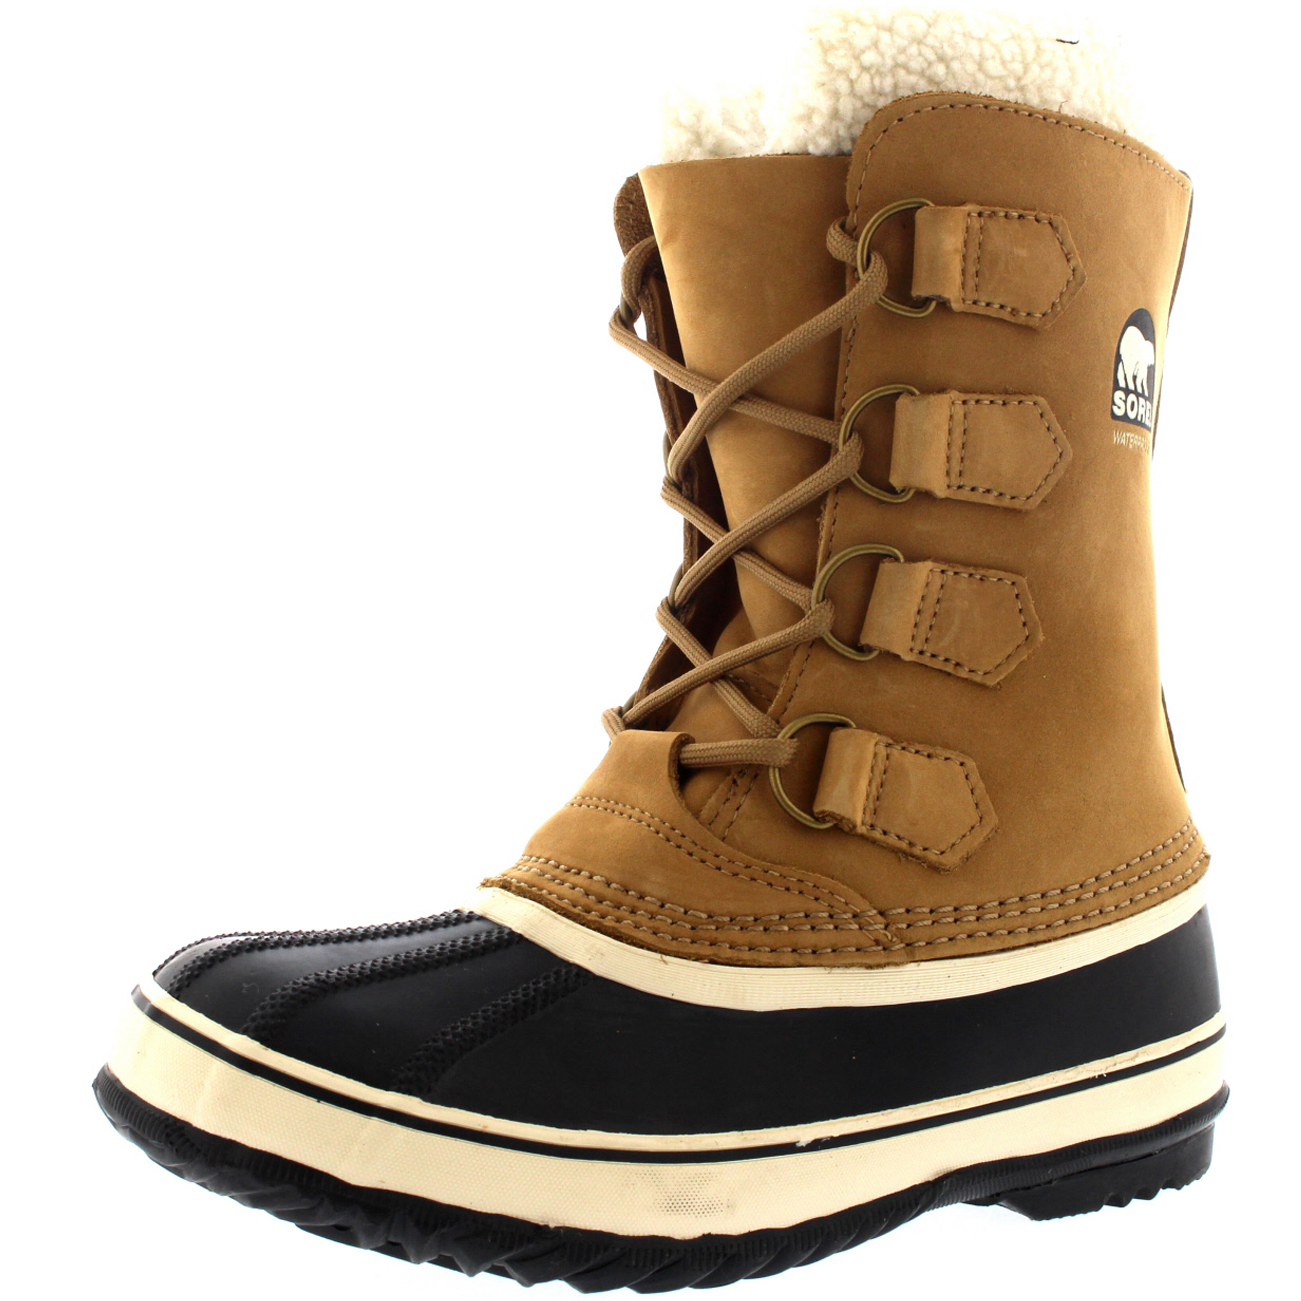 Sorel Ladies Shoes